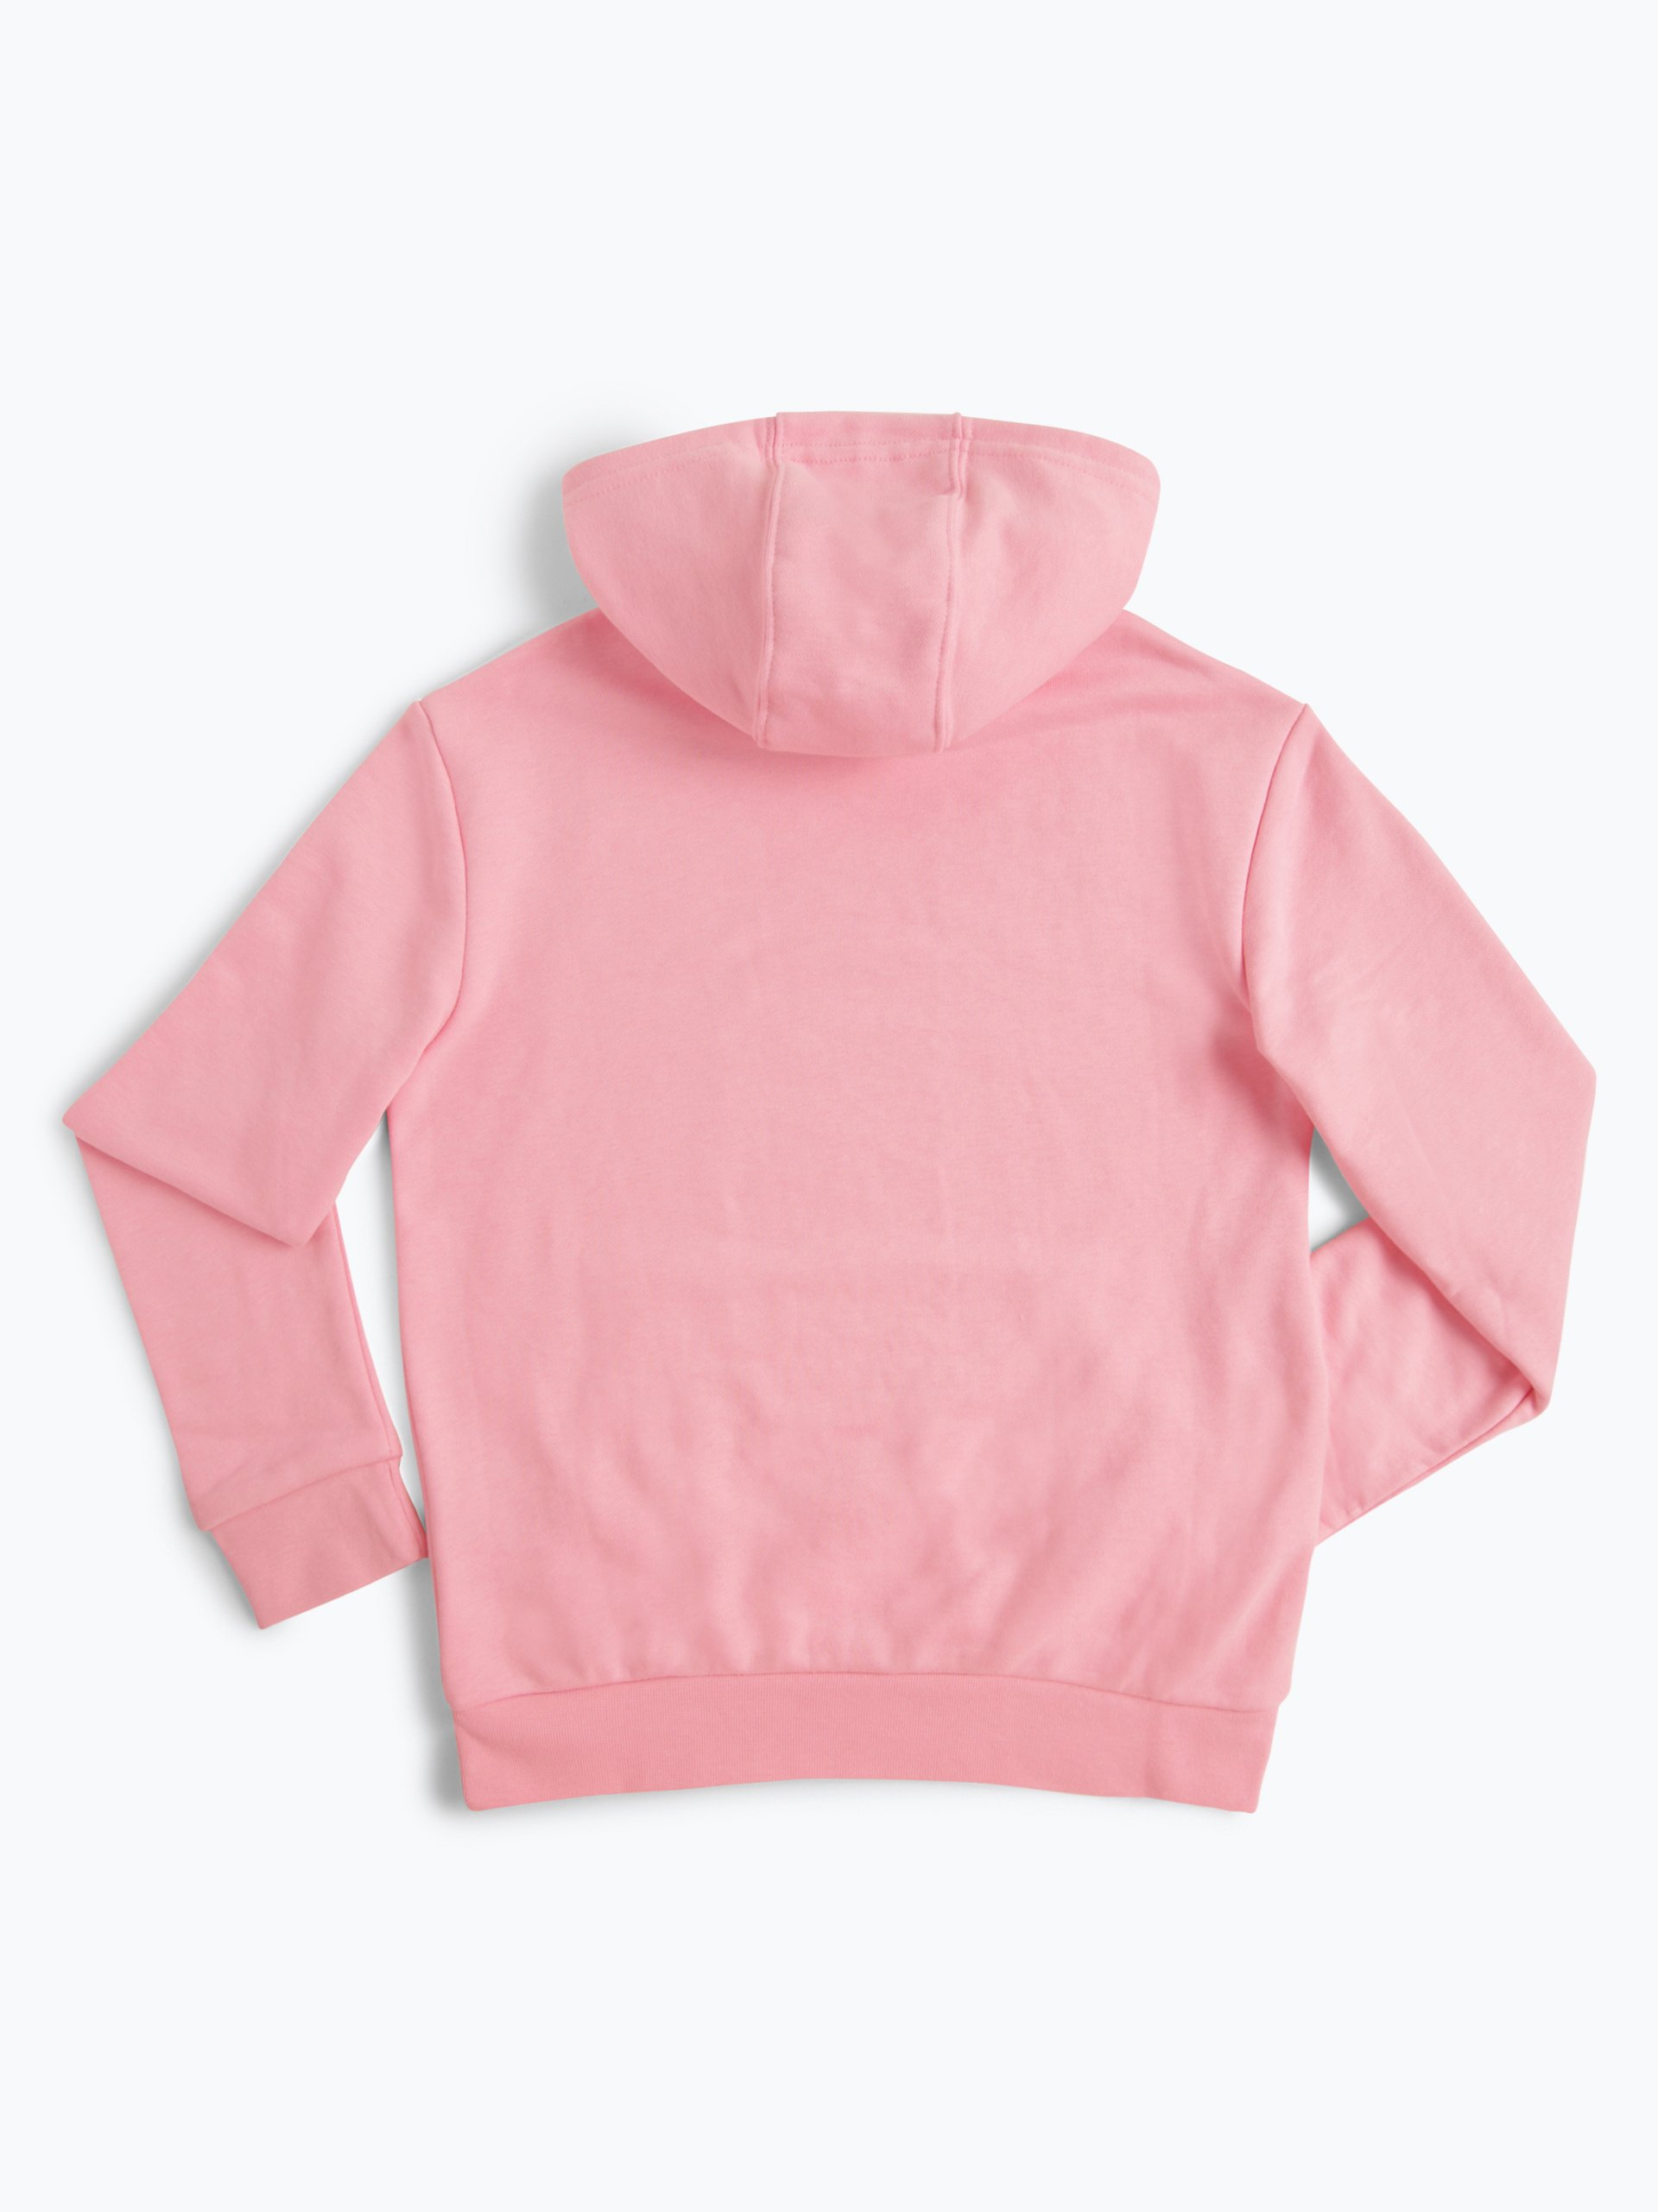 adidas originals m dchen sweatshirt pink rosa uni online. Black Bedroom Furniture Sets. Home Design Ideas